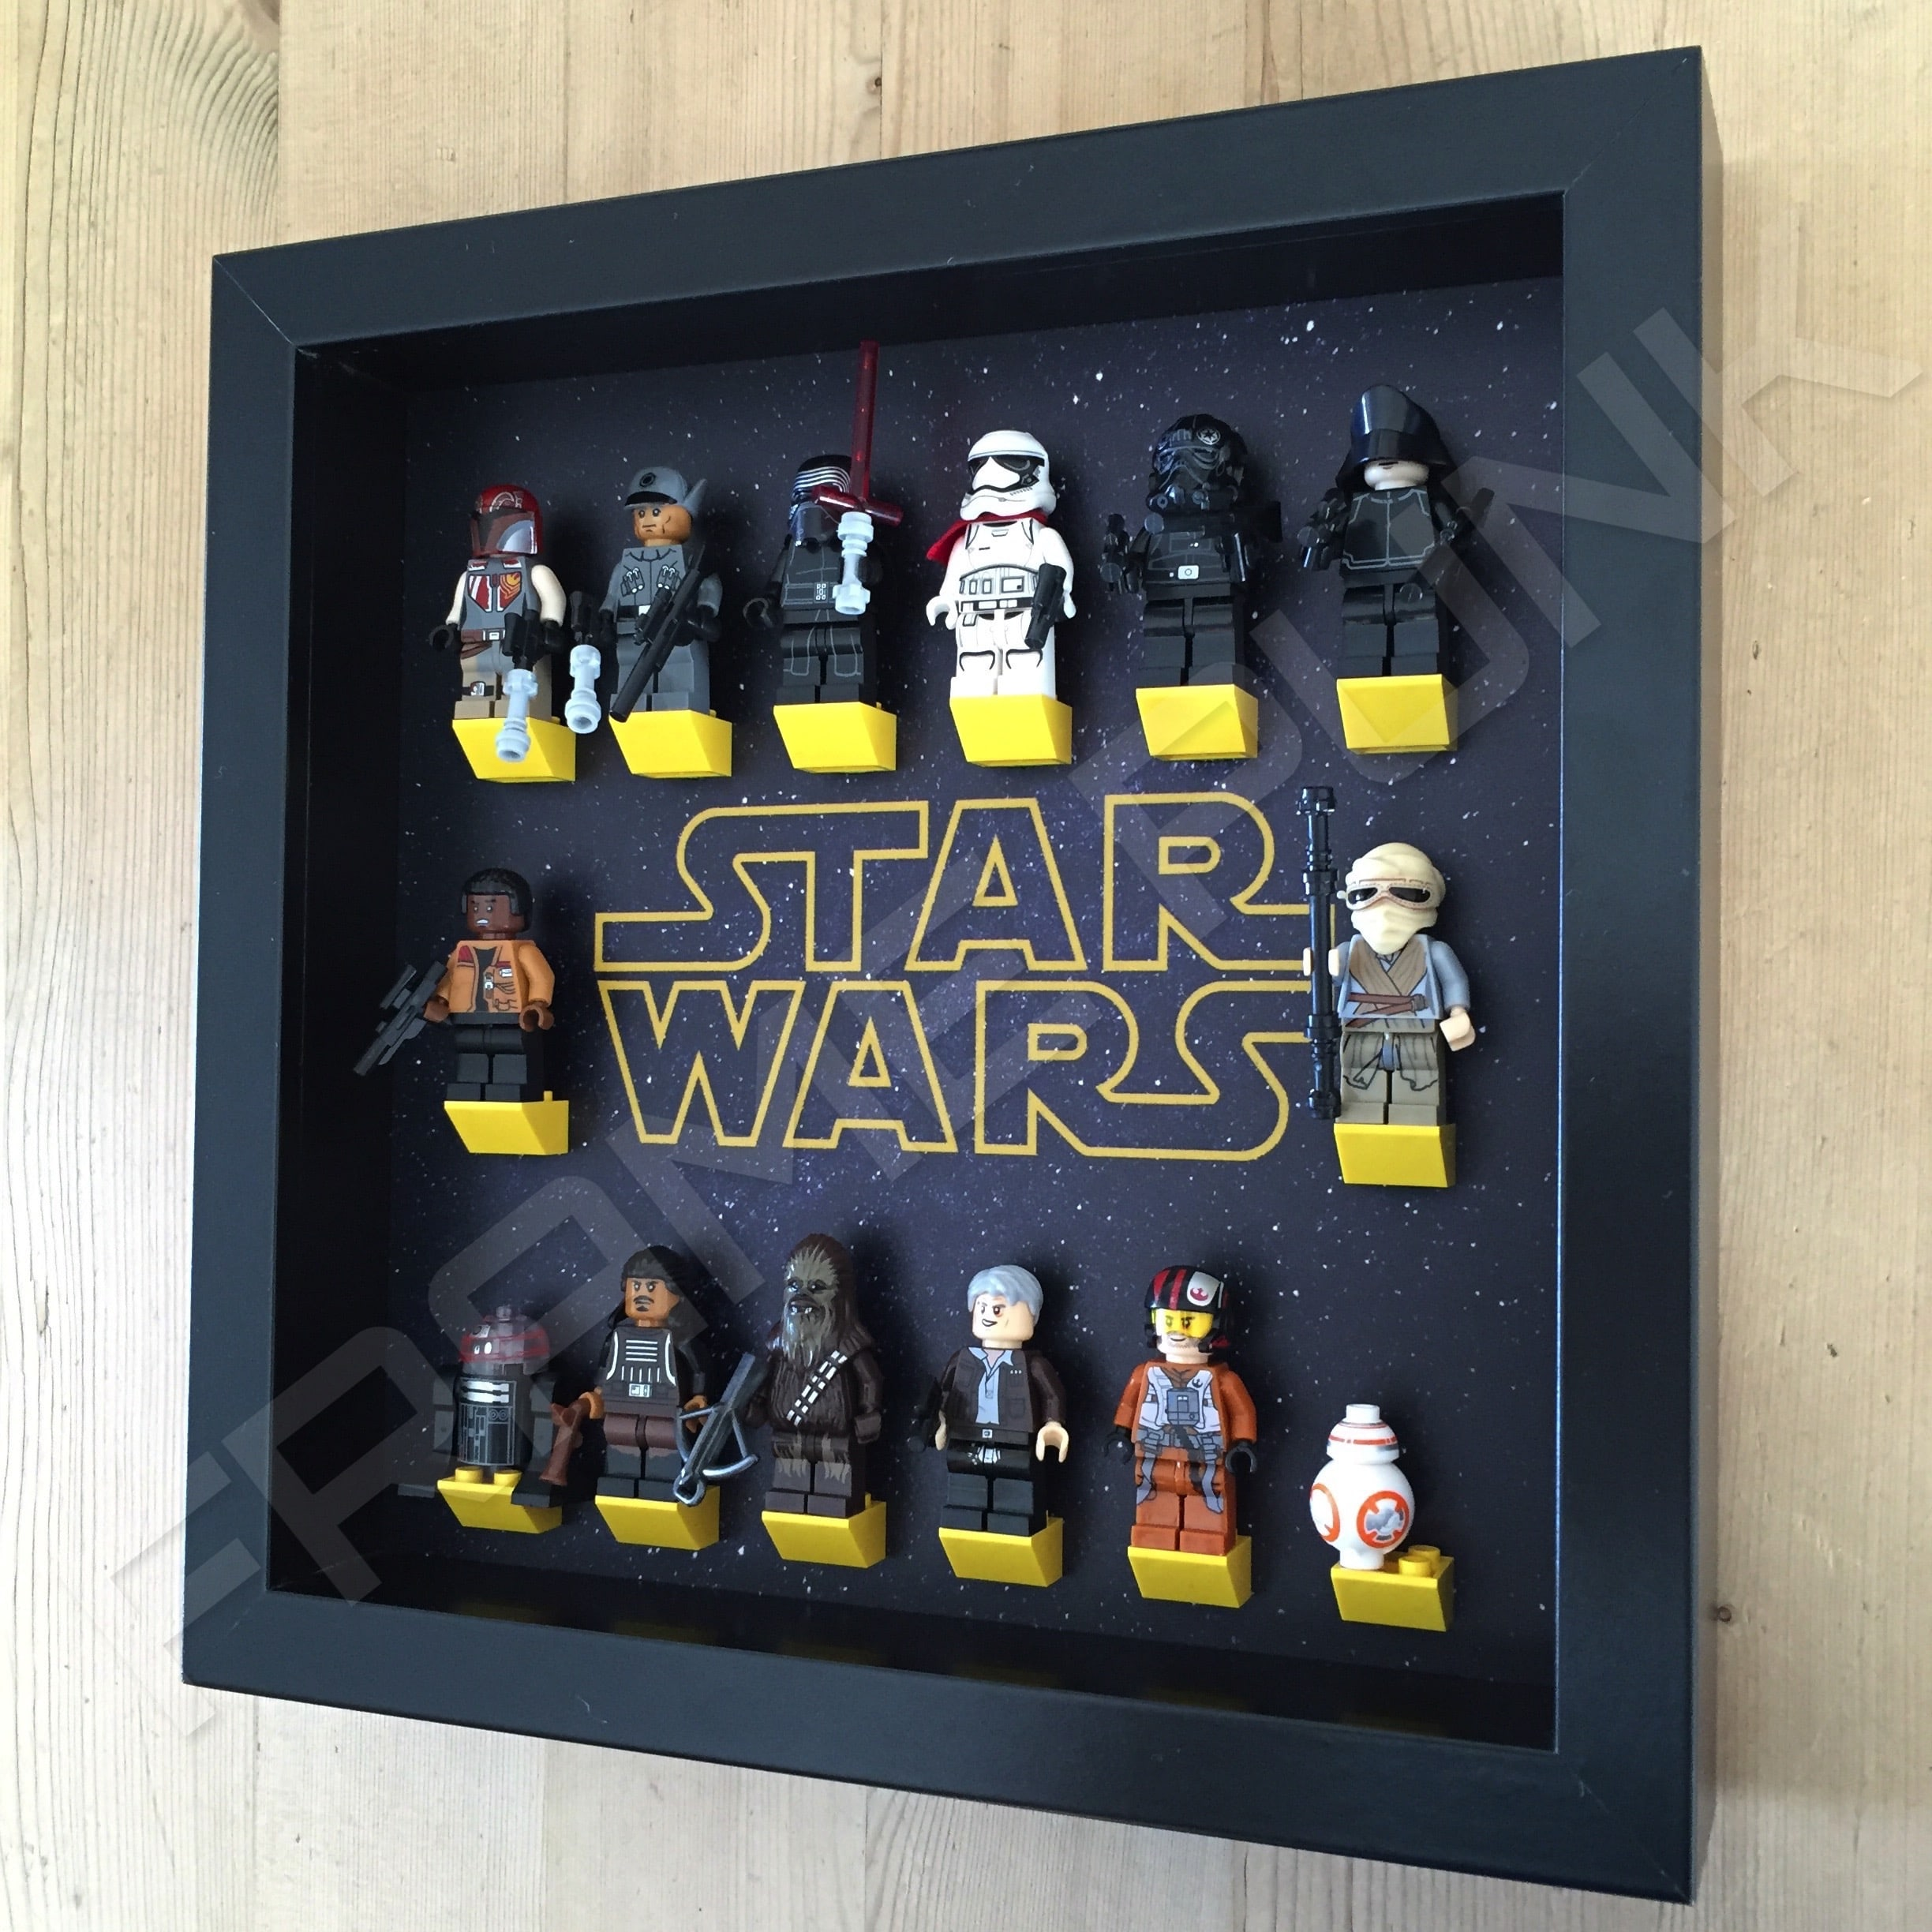 Star Wars Lego Minifigure Display Frame Frame Punk